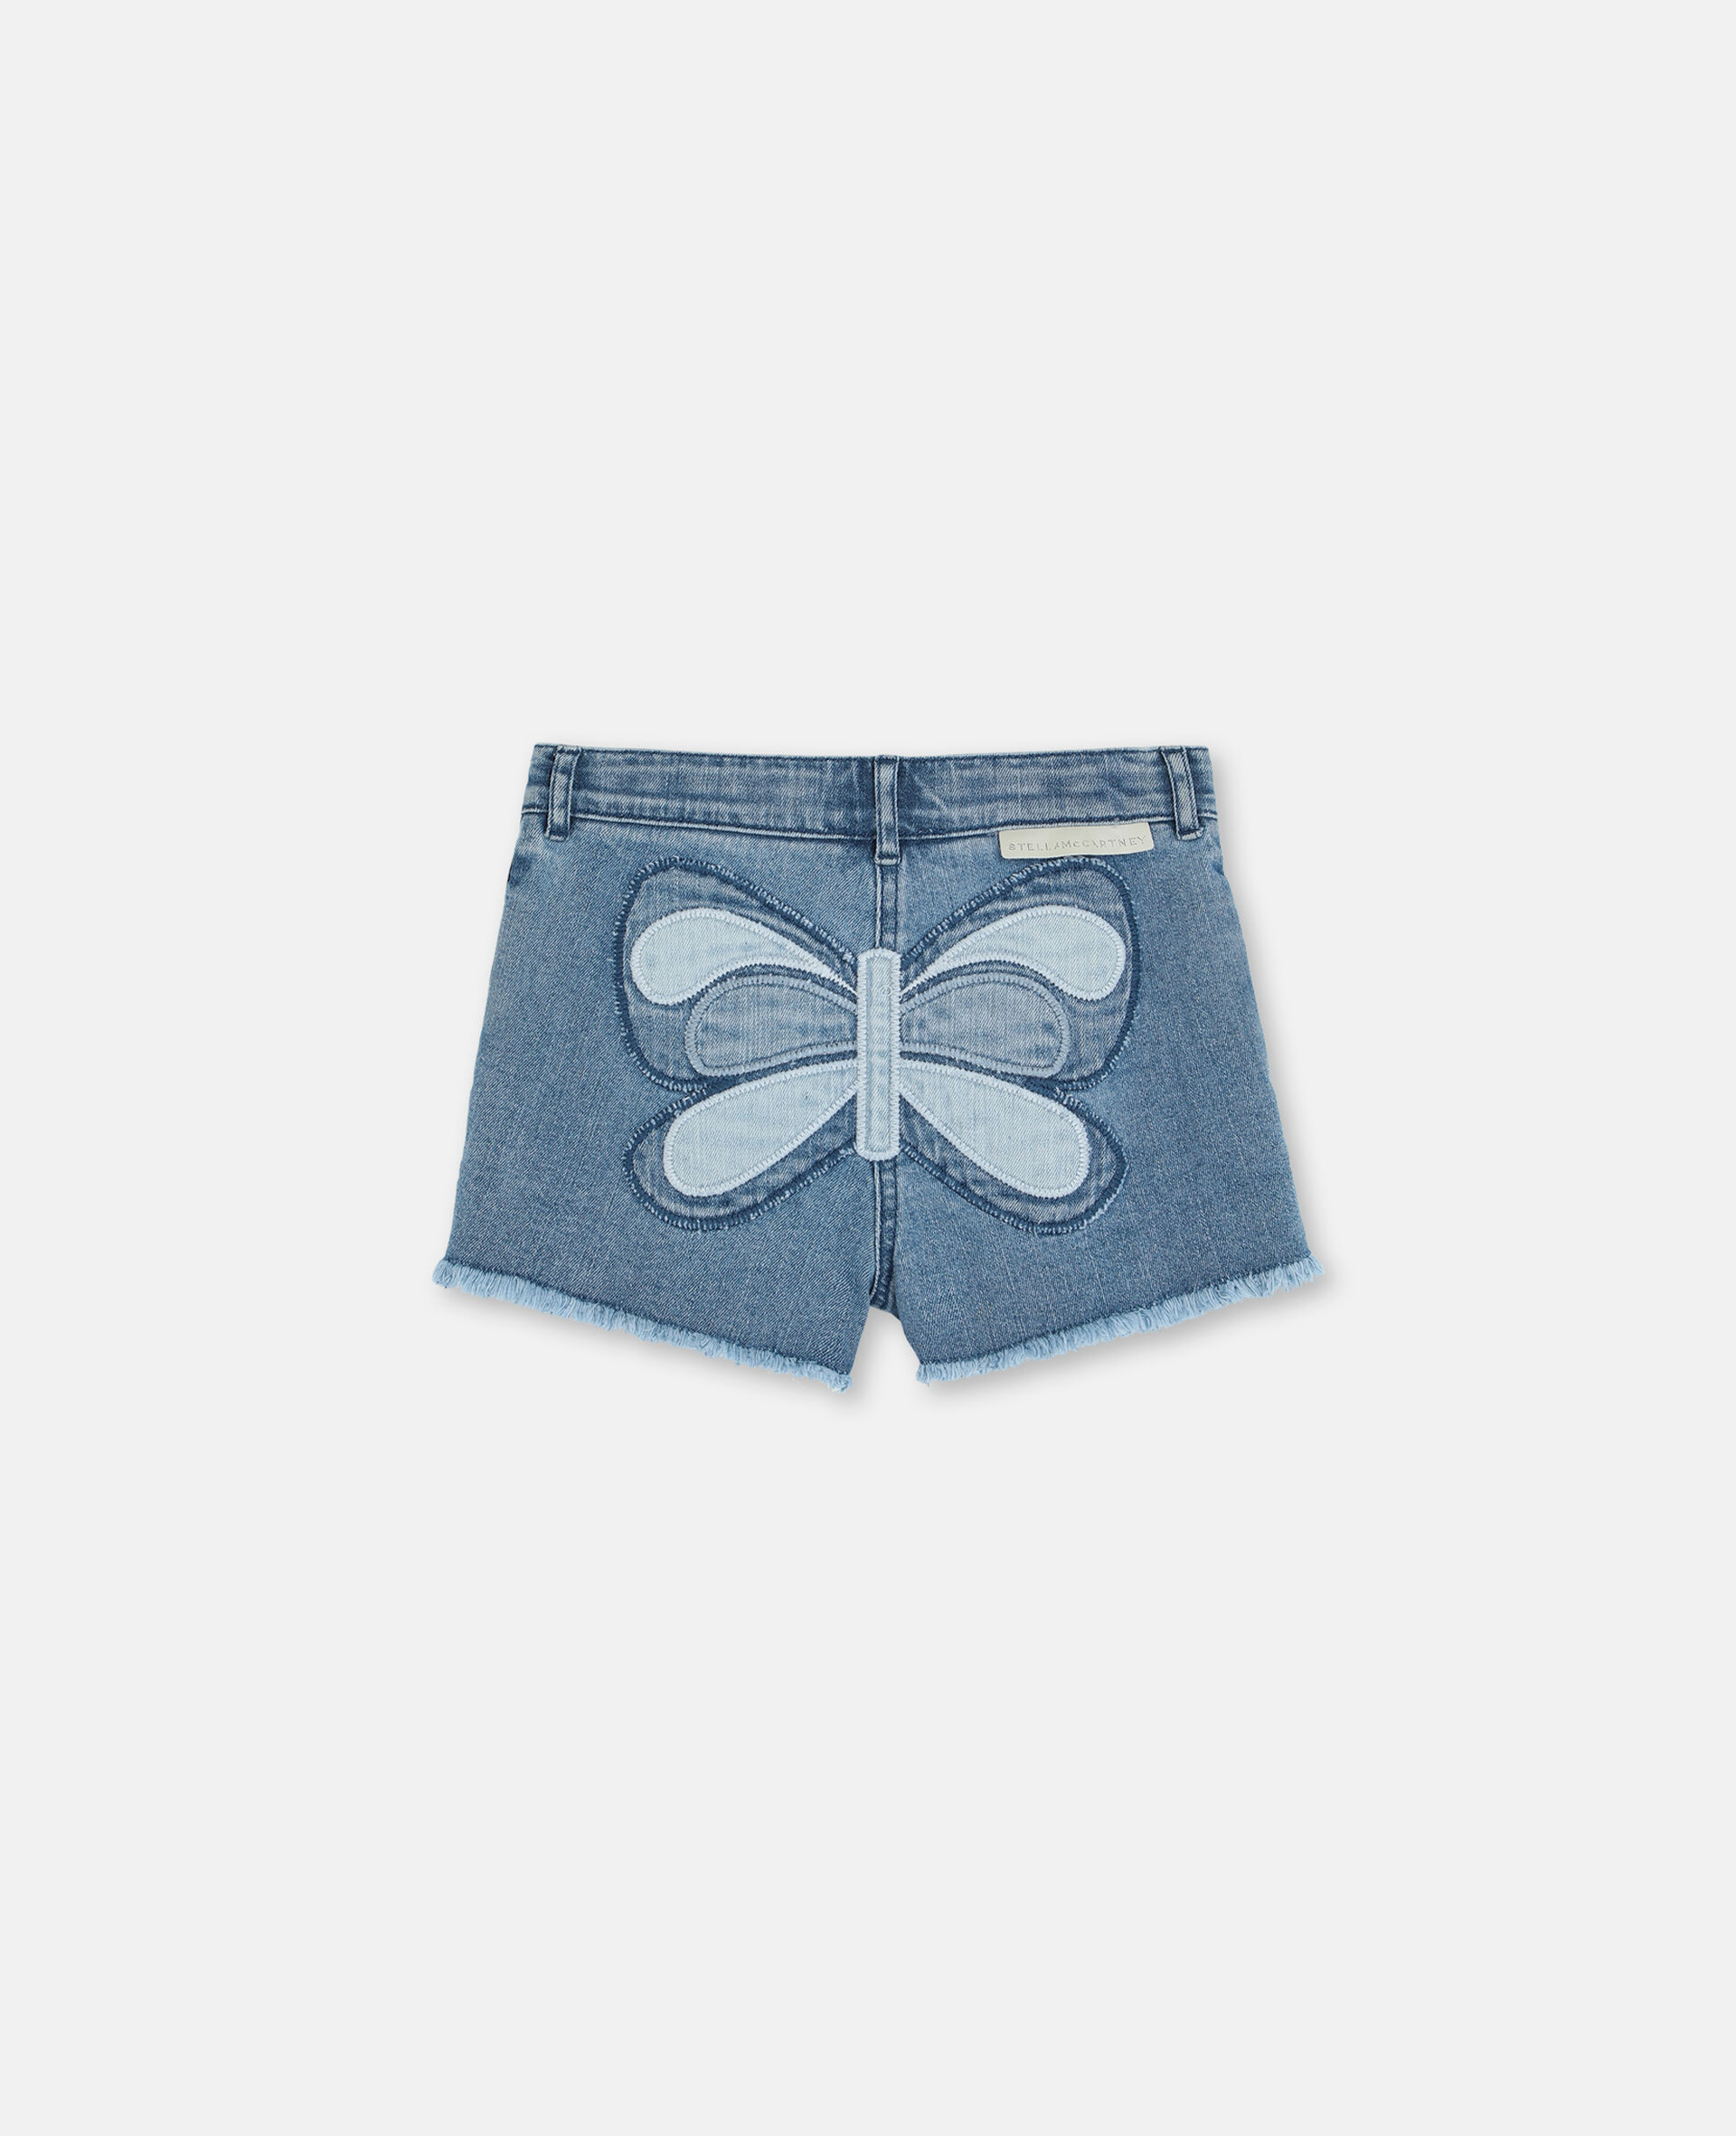 Butterfly Patch牛仔短裤 -蓝色-large image number 3